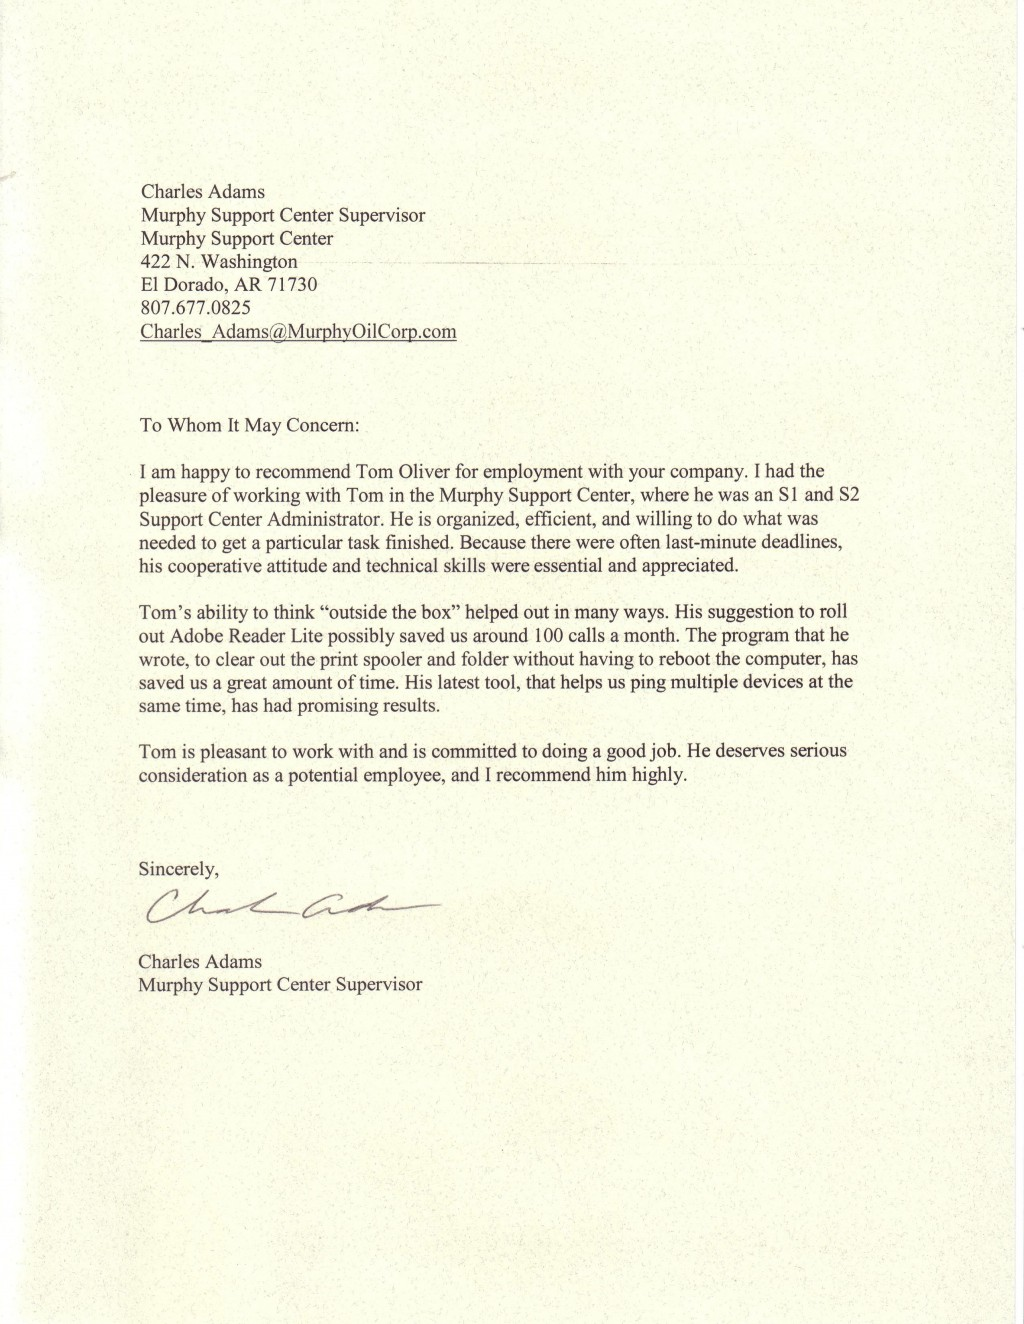 002 Excellent Professional Reference Letter Template Word Highest Clarity Large